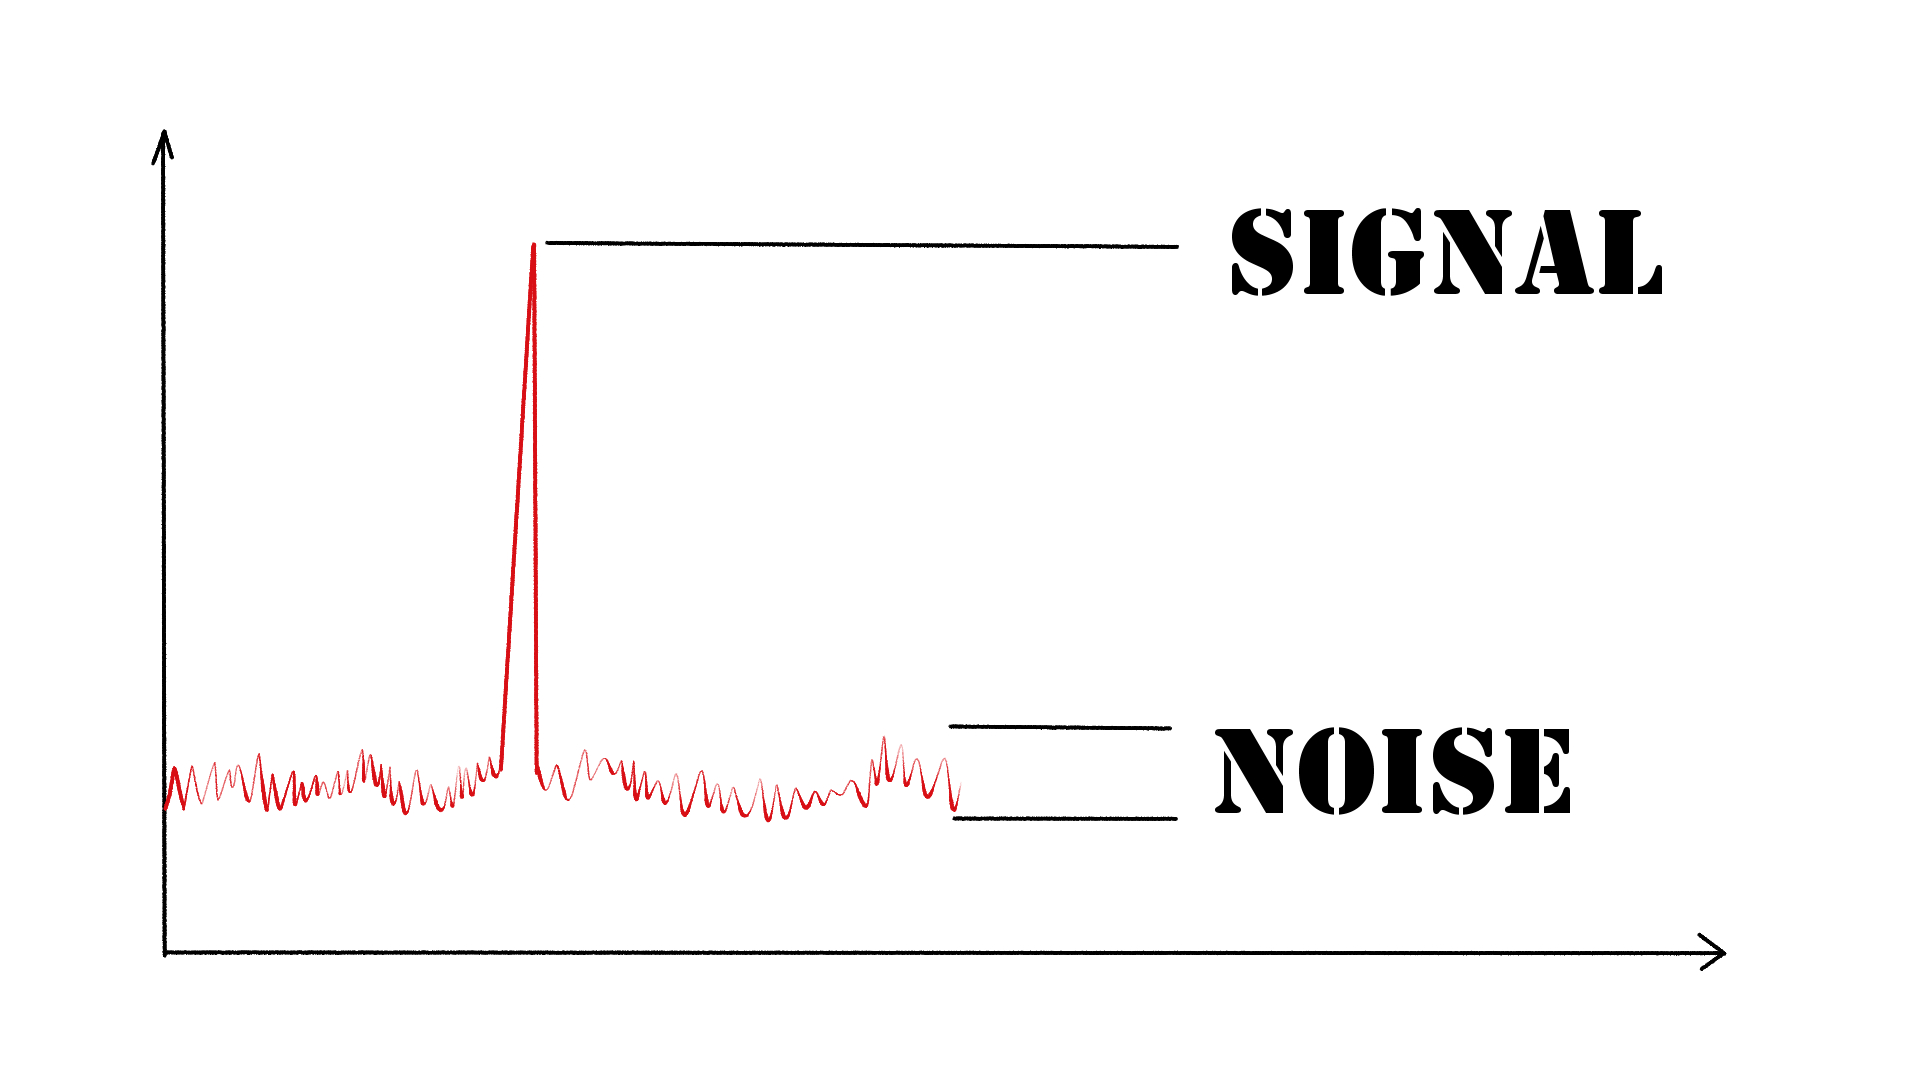 Frequency Spectrum showing signal and noise